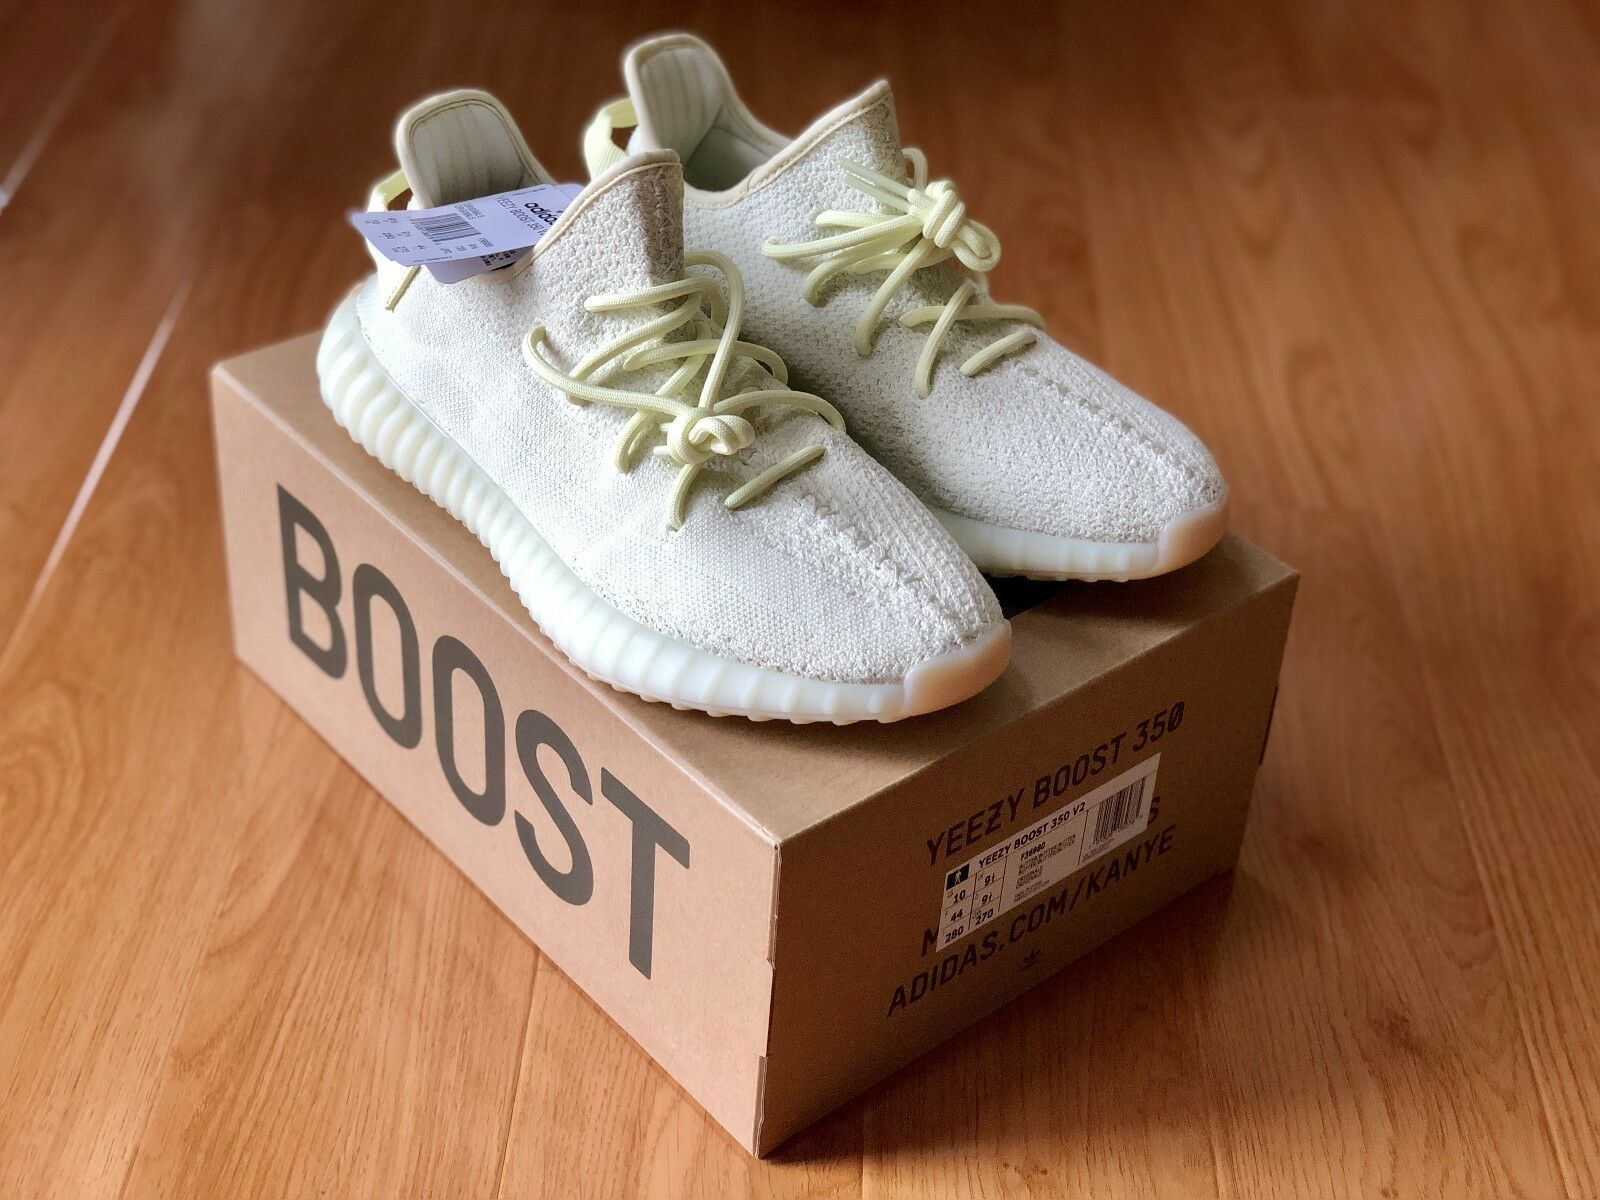 bca945b05 Adidas Yeezy 350 Butter Size 10 Boost V2 nflcgb2159-Athletic Shoes ...